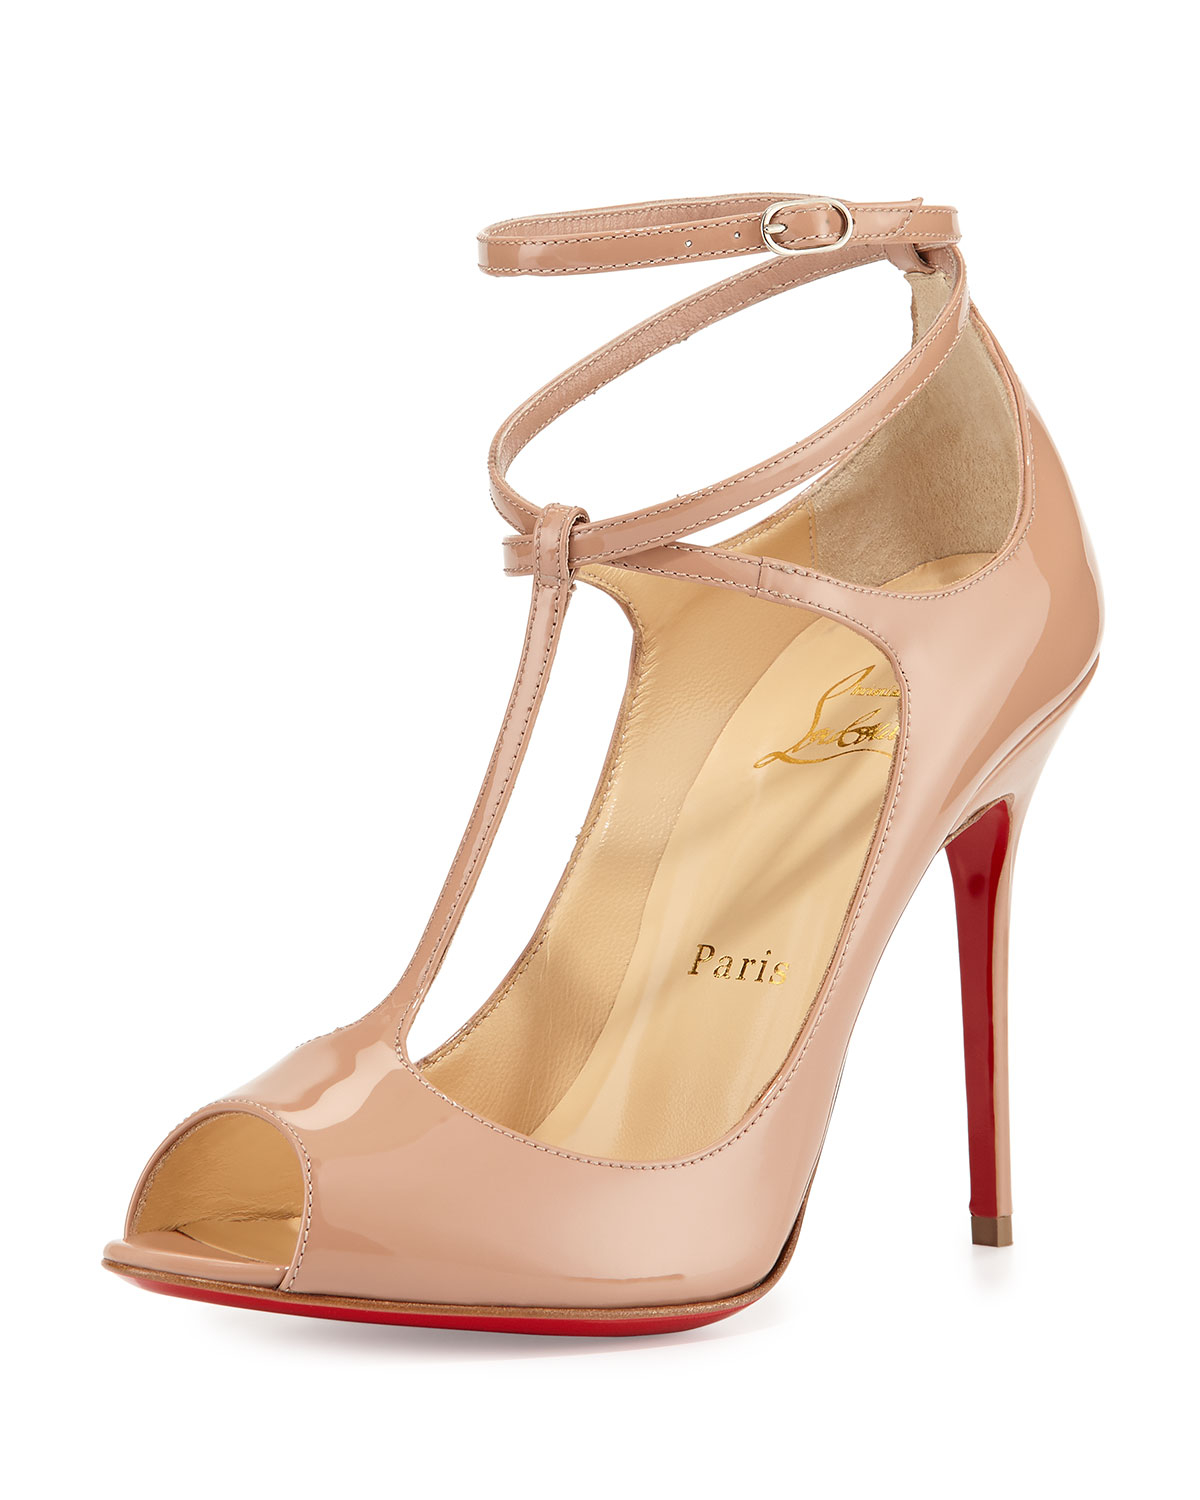 Christian Louboutin Mrs Early T Strap Red Sole Pump